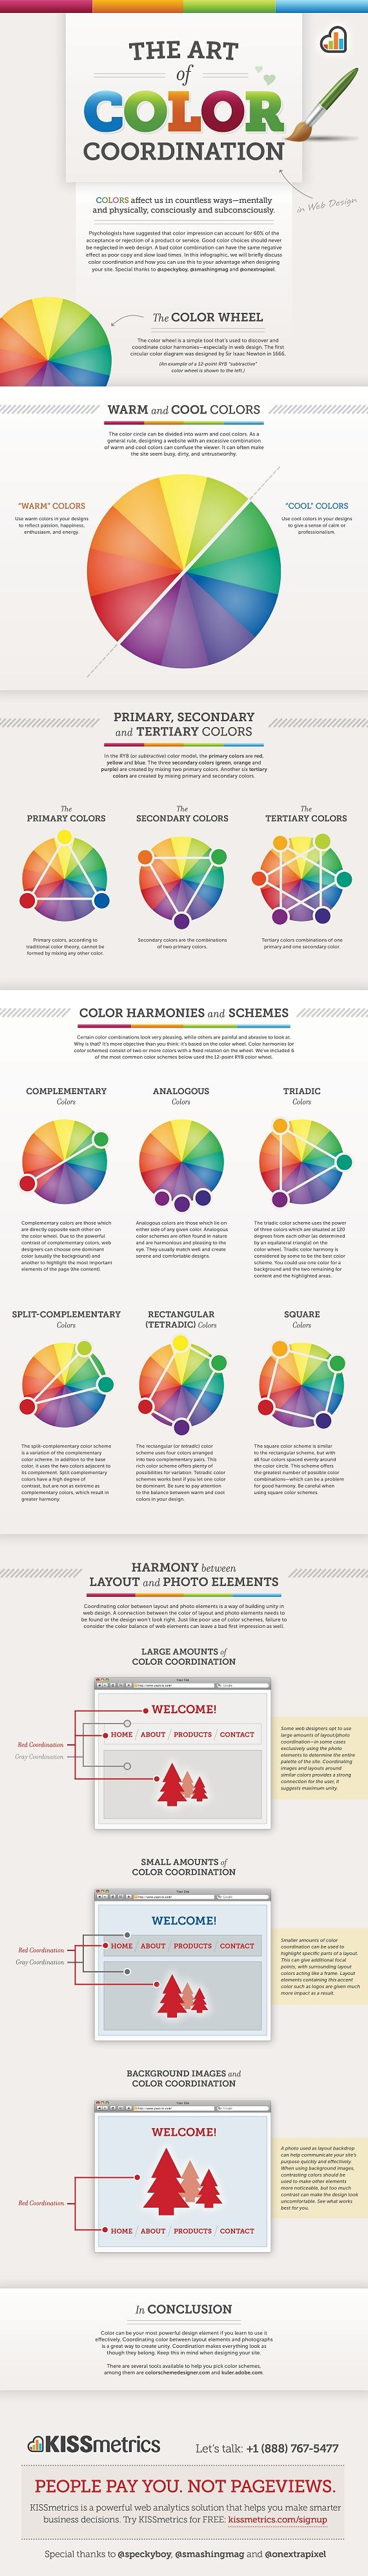 The Art of Color Coordination (infographic)